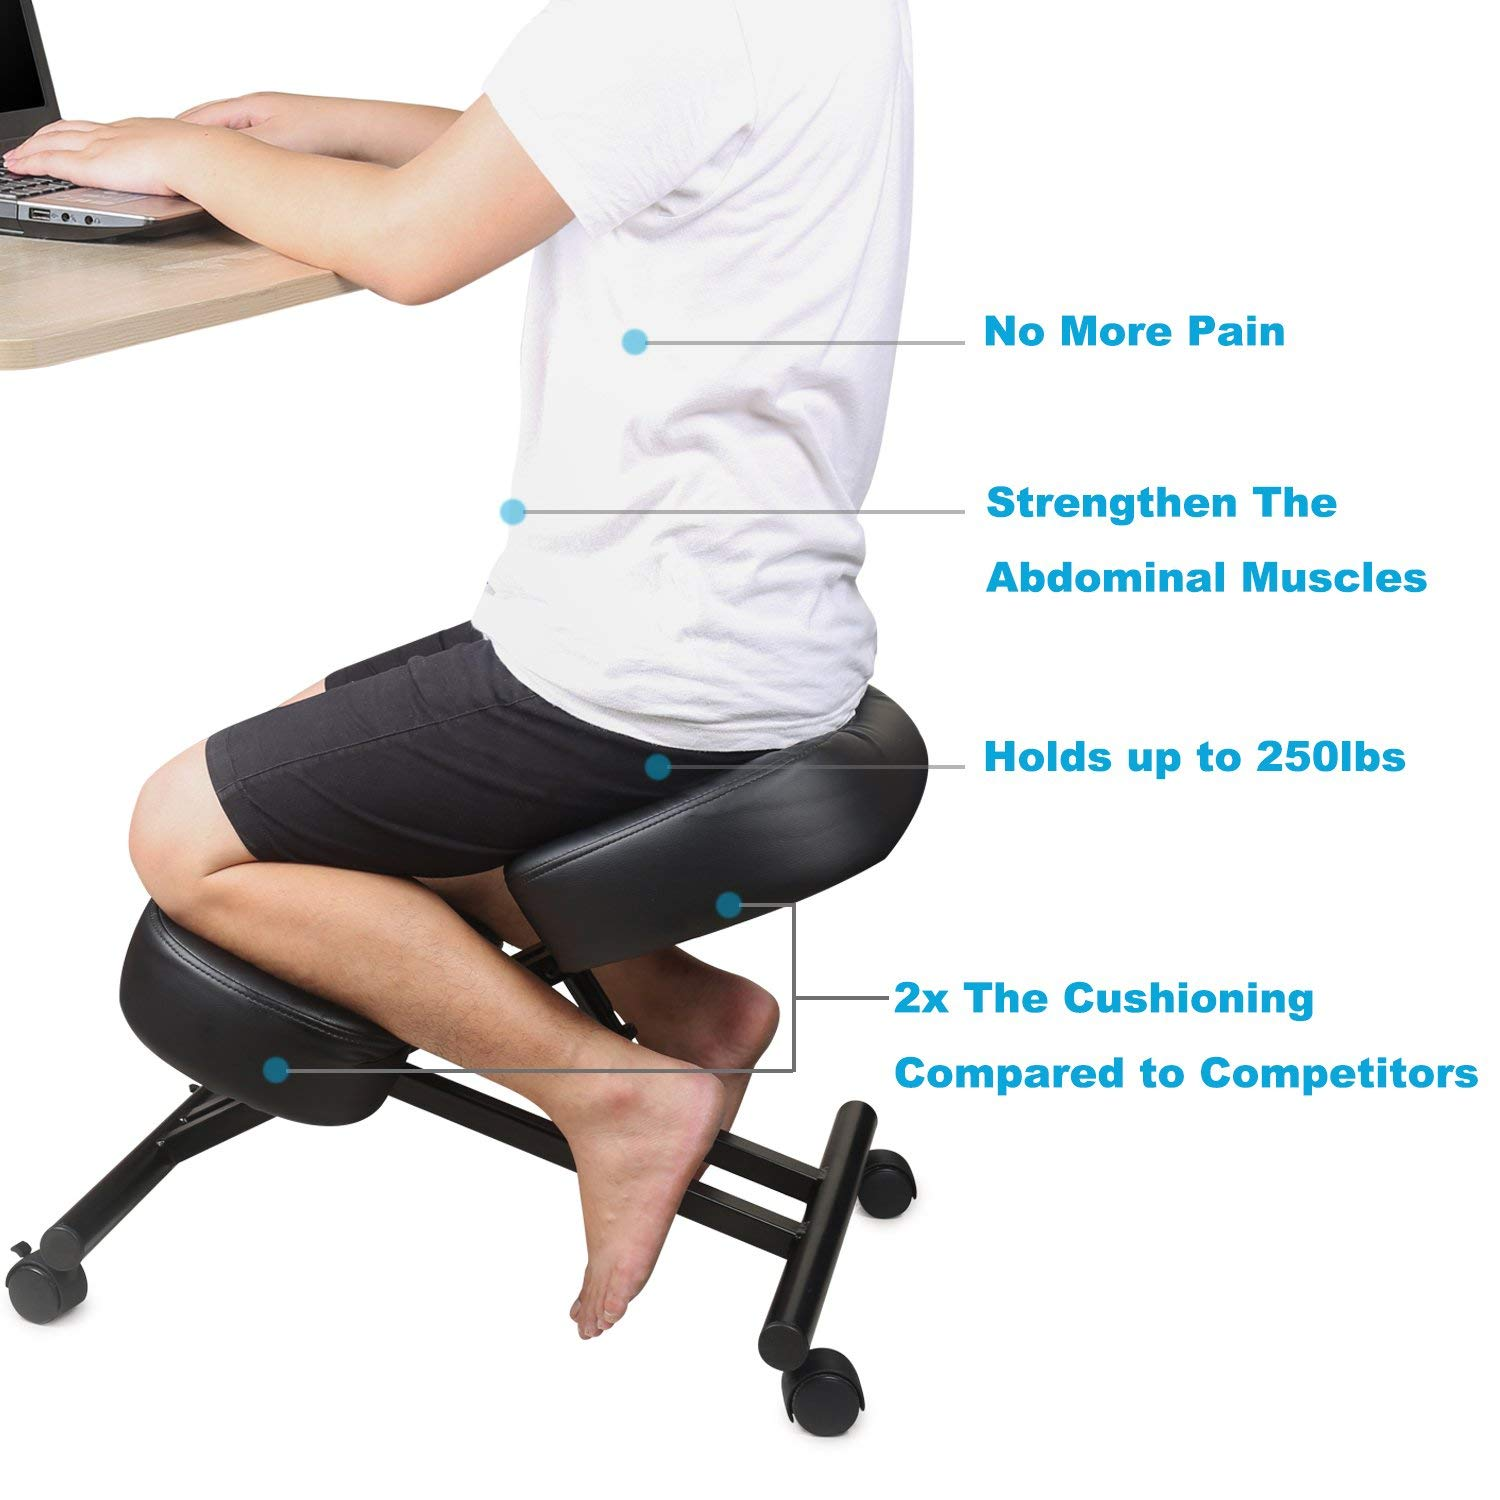 Ergonomic Chair Kneeling The 3 Best Ergonomic Kneeling Chairs A Buyers Guide